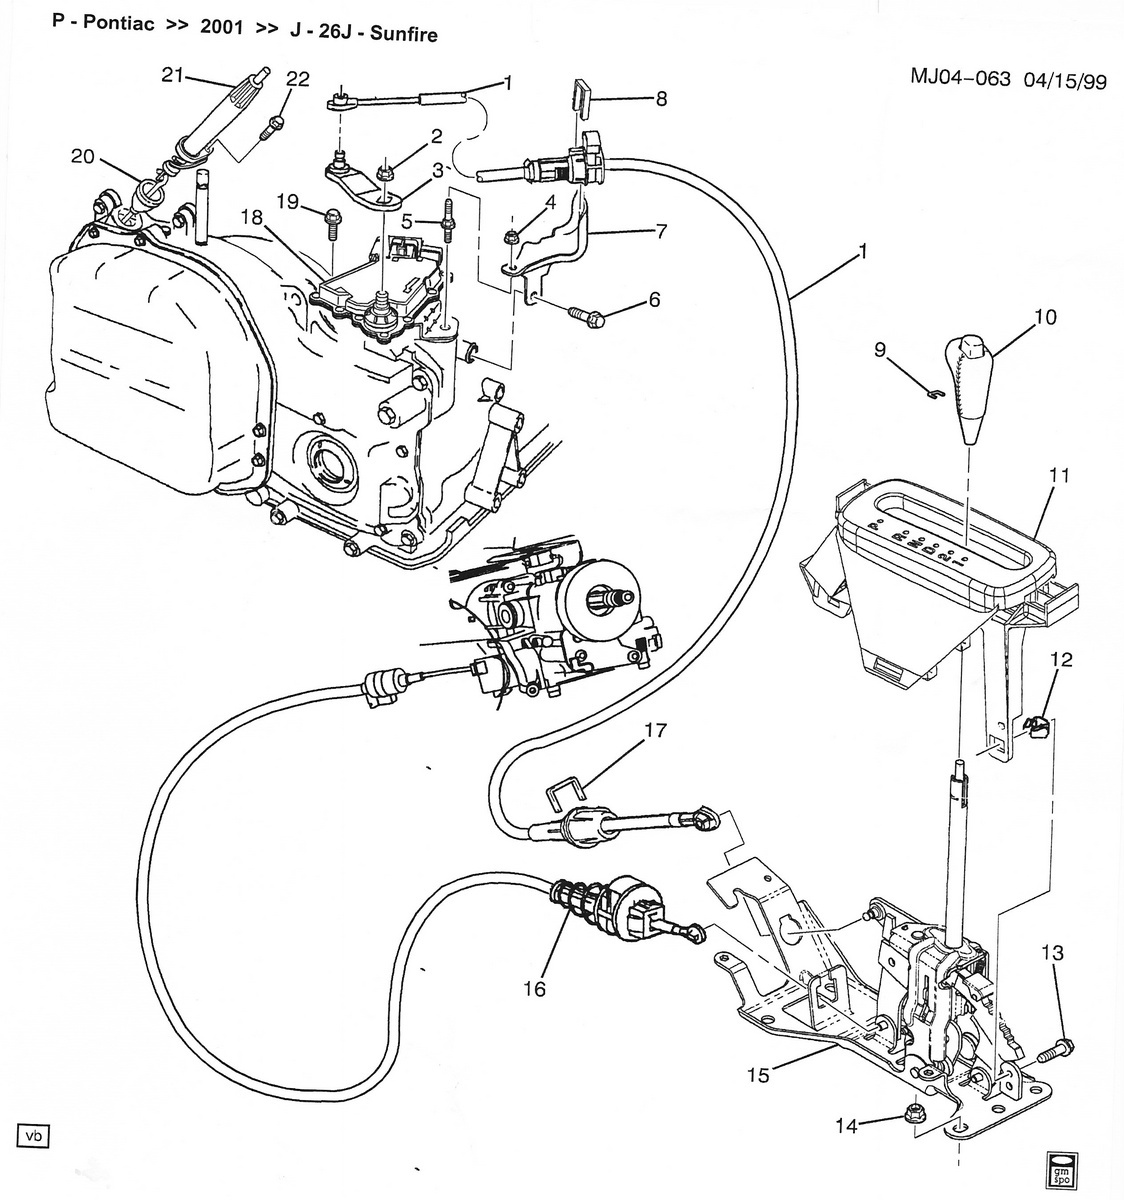 hight resolution of 2000 chevy cavalier exhaust system diagram wiring diagram name 2000 chevy cavalier exhaust system diagram